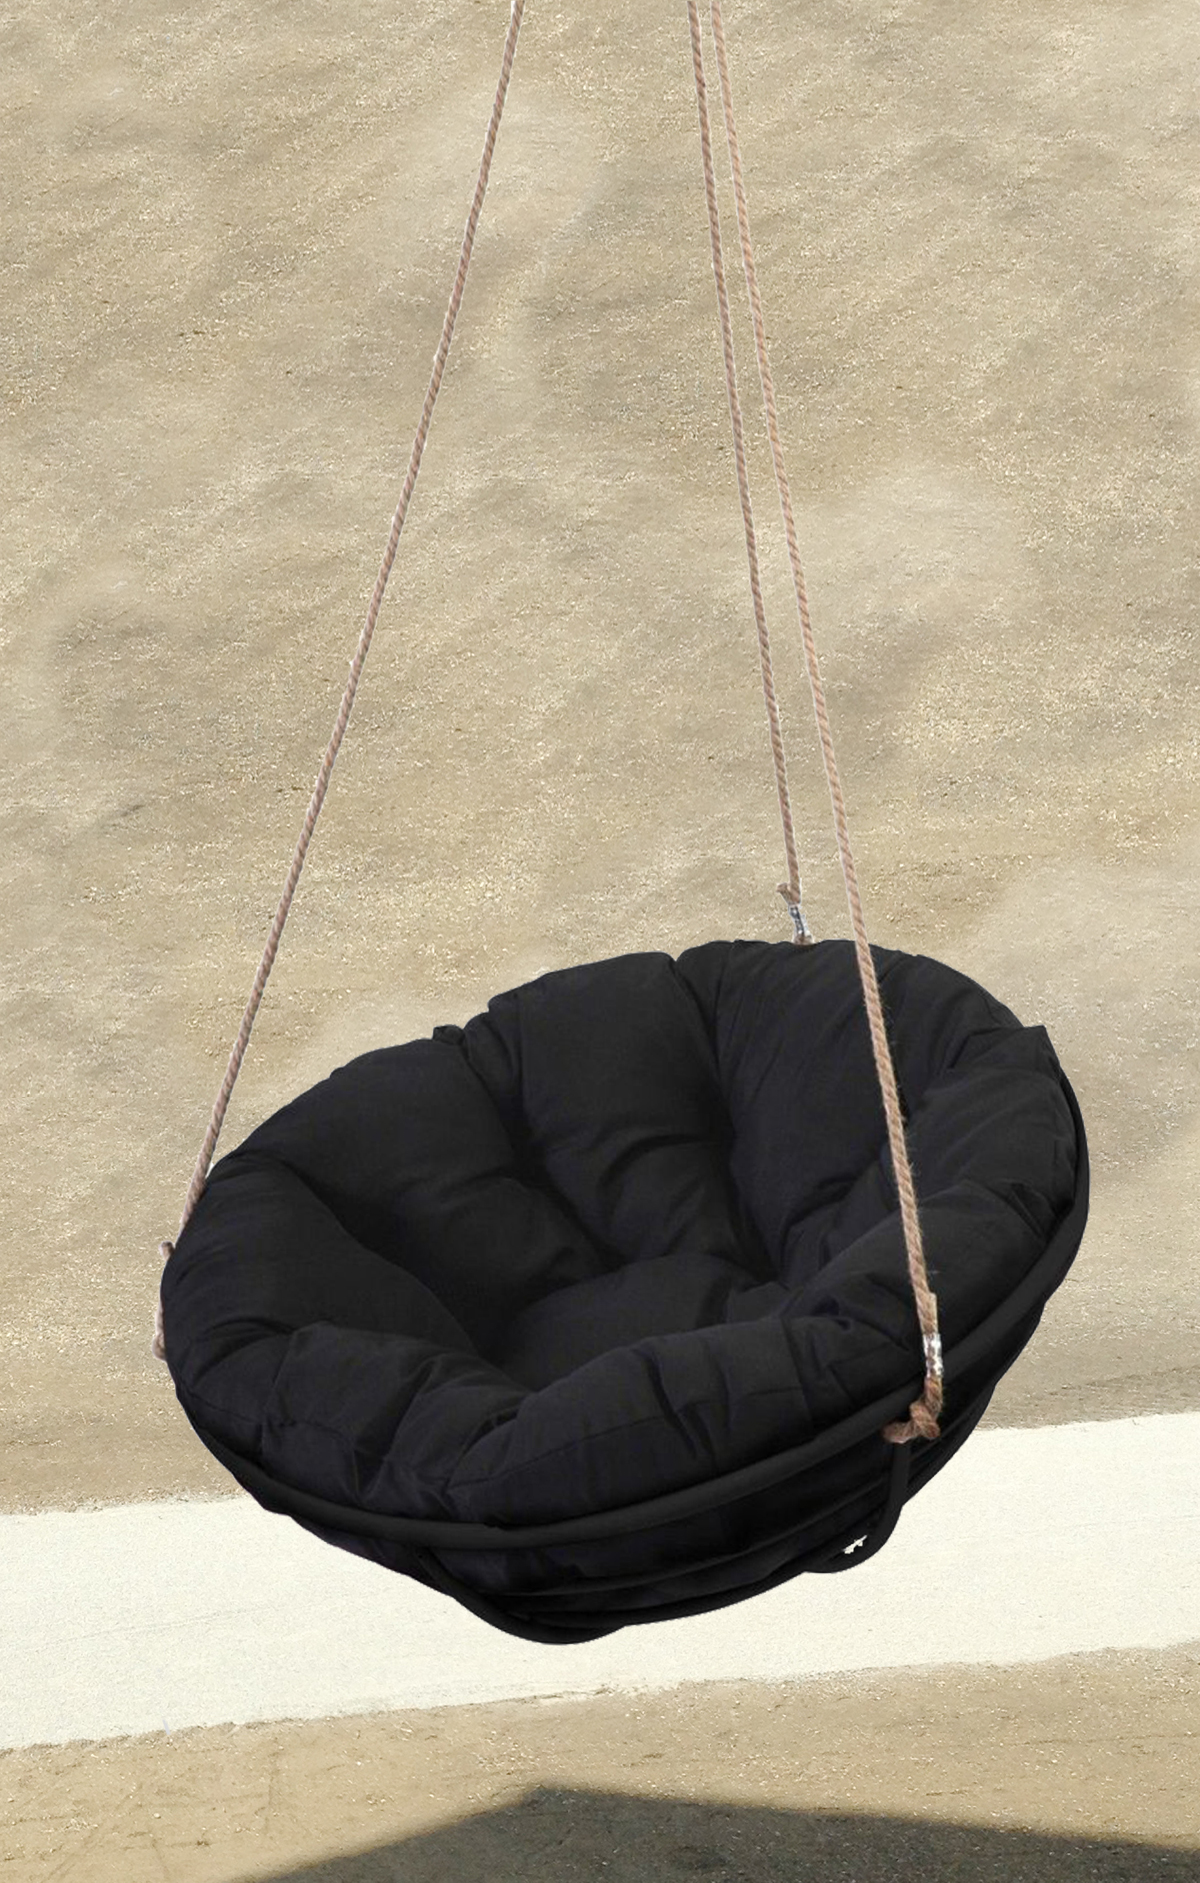 hanging-papasan-chair-black-sand